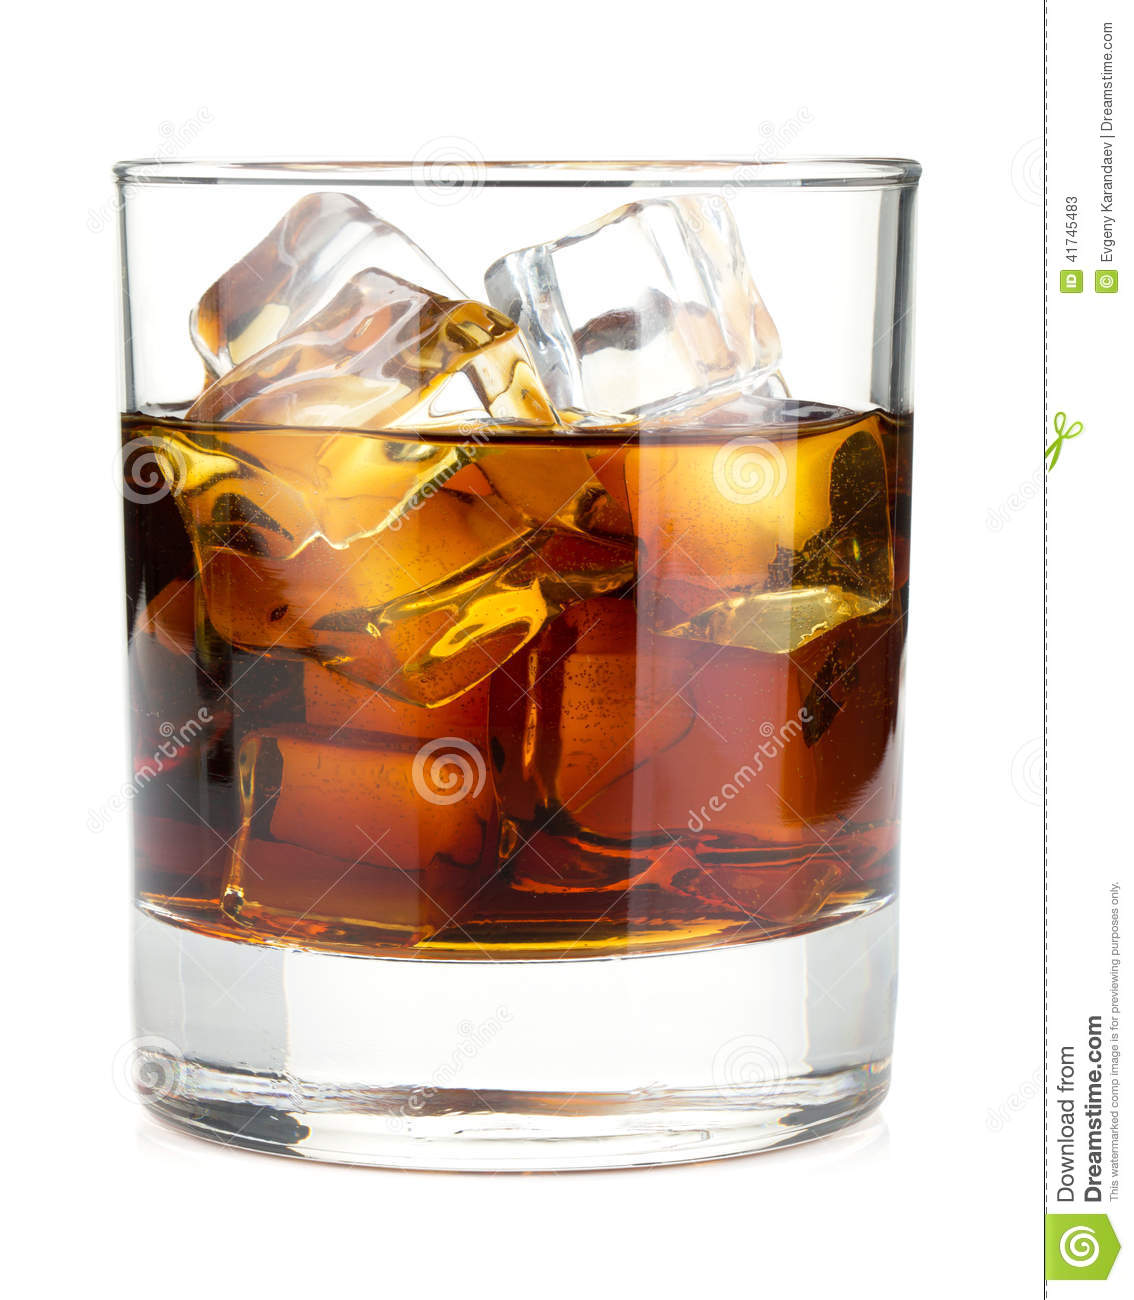 Whiskey Cola Cocktail Stock Photo - Image: 41745483